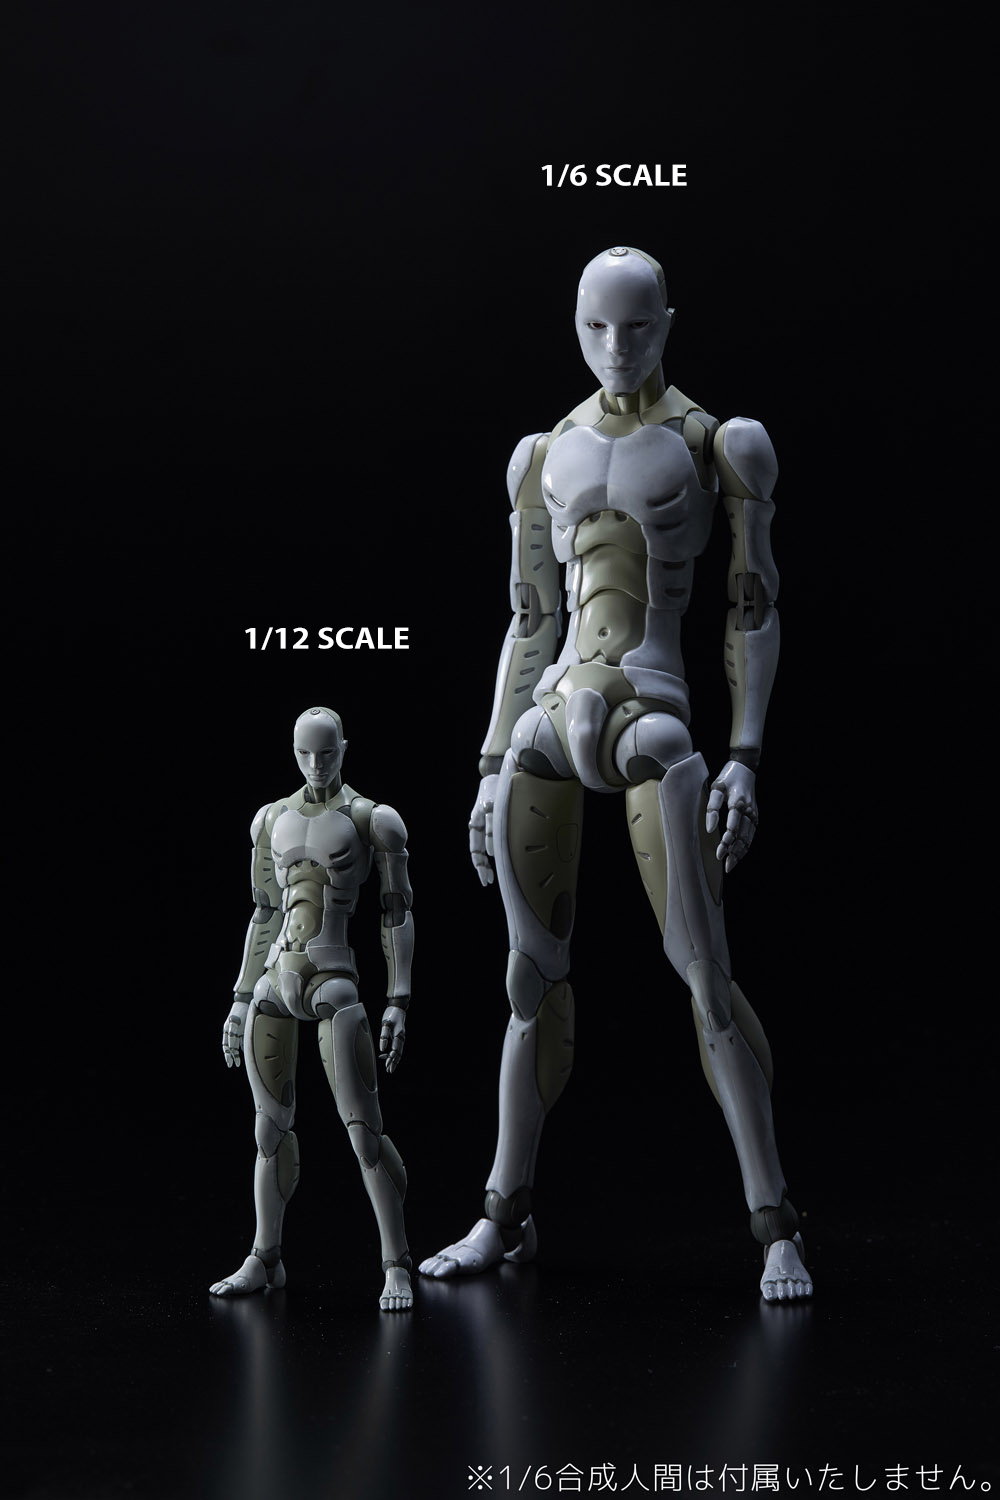 TOA HEAVY INDUSTRIES SYNTHETIC HUMAN PX 1/6 SCALE AF (Net) (